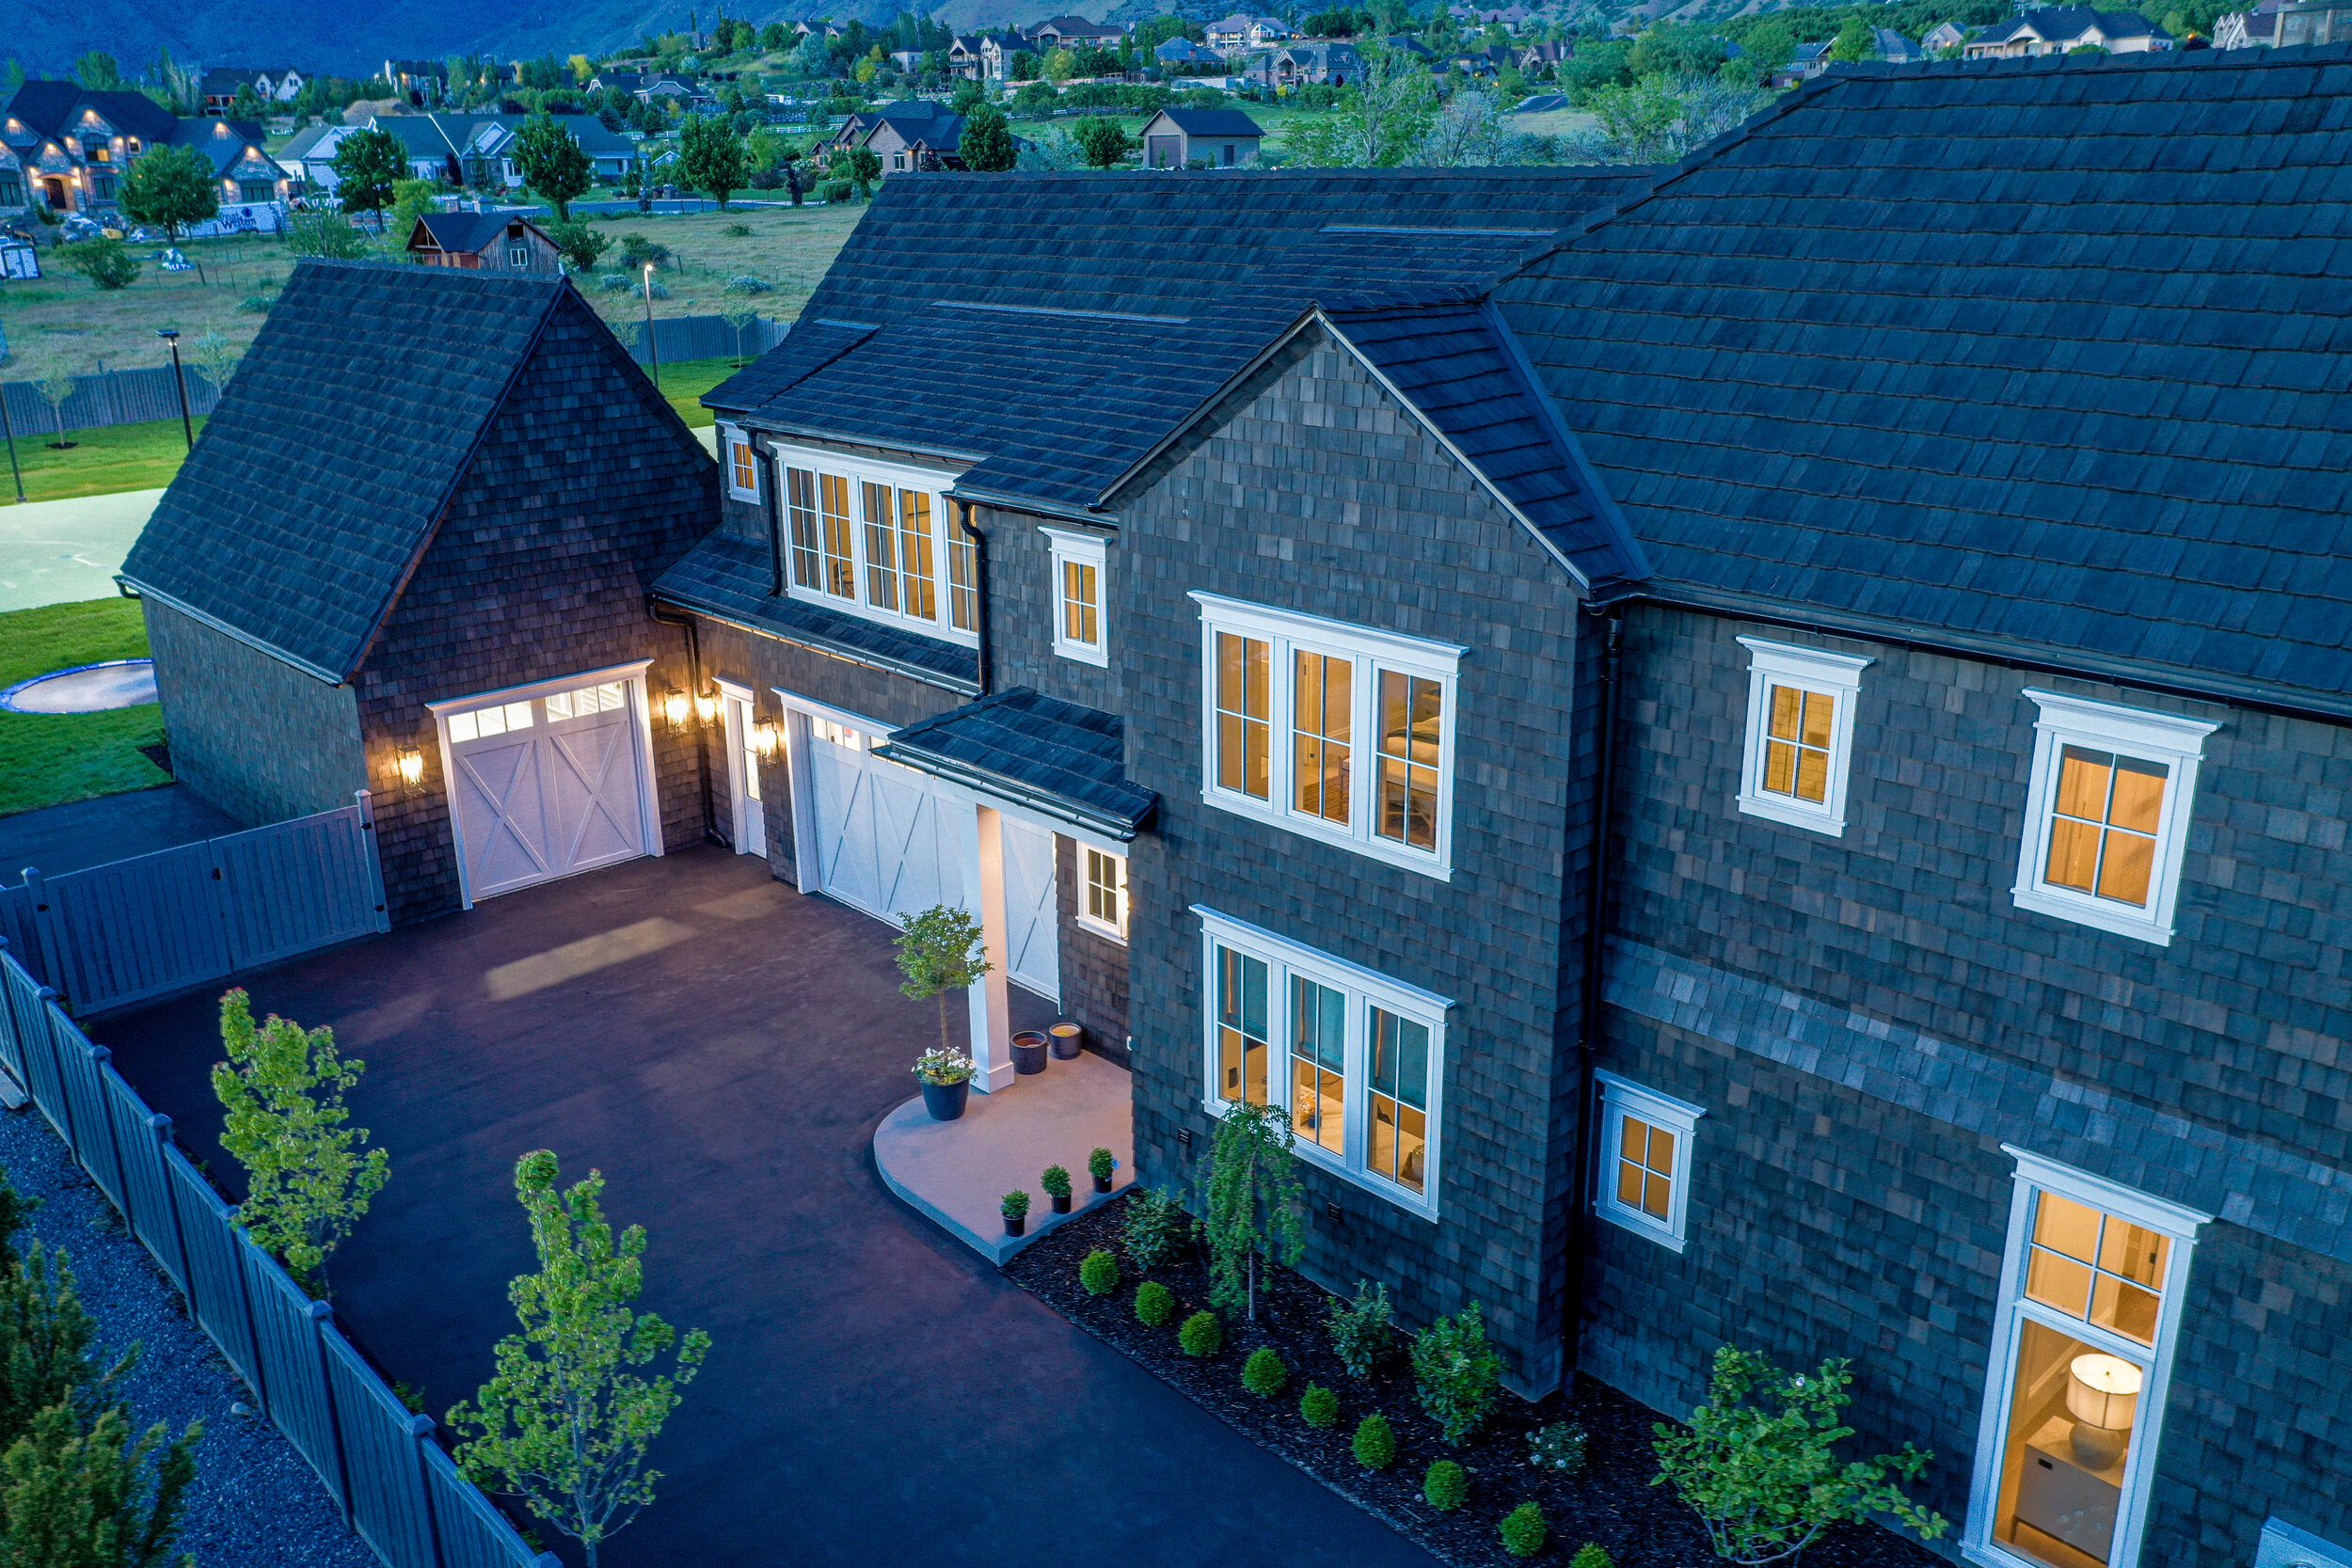 """2019 Utah Valley Parade of Homes - """"The CeDUR roofing product we used was a HUGE hit"""""""